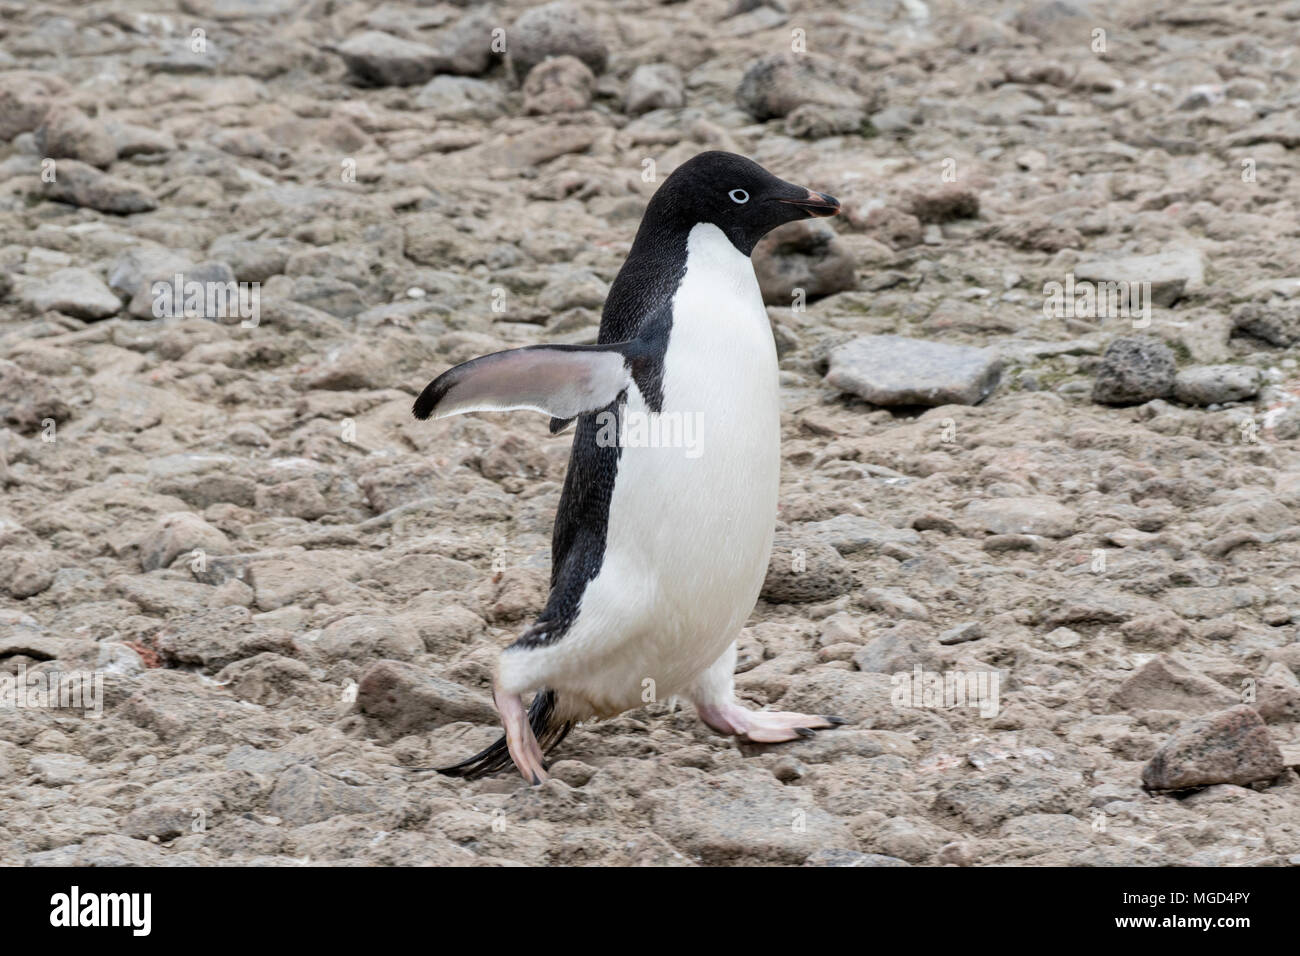 Adelie penguin Pygoscelis adeliae at breeding rookery or colony, Paulet Island, Weddell Sea, Antarctica - Stock Image